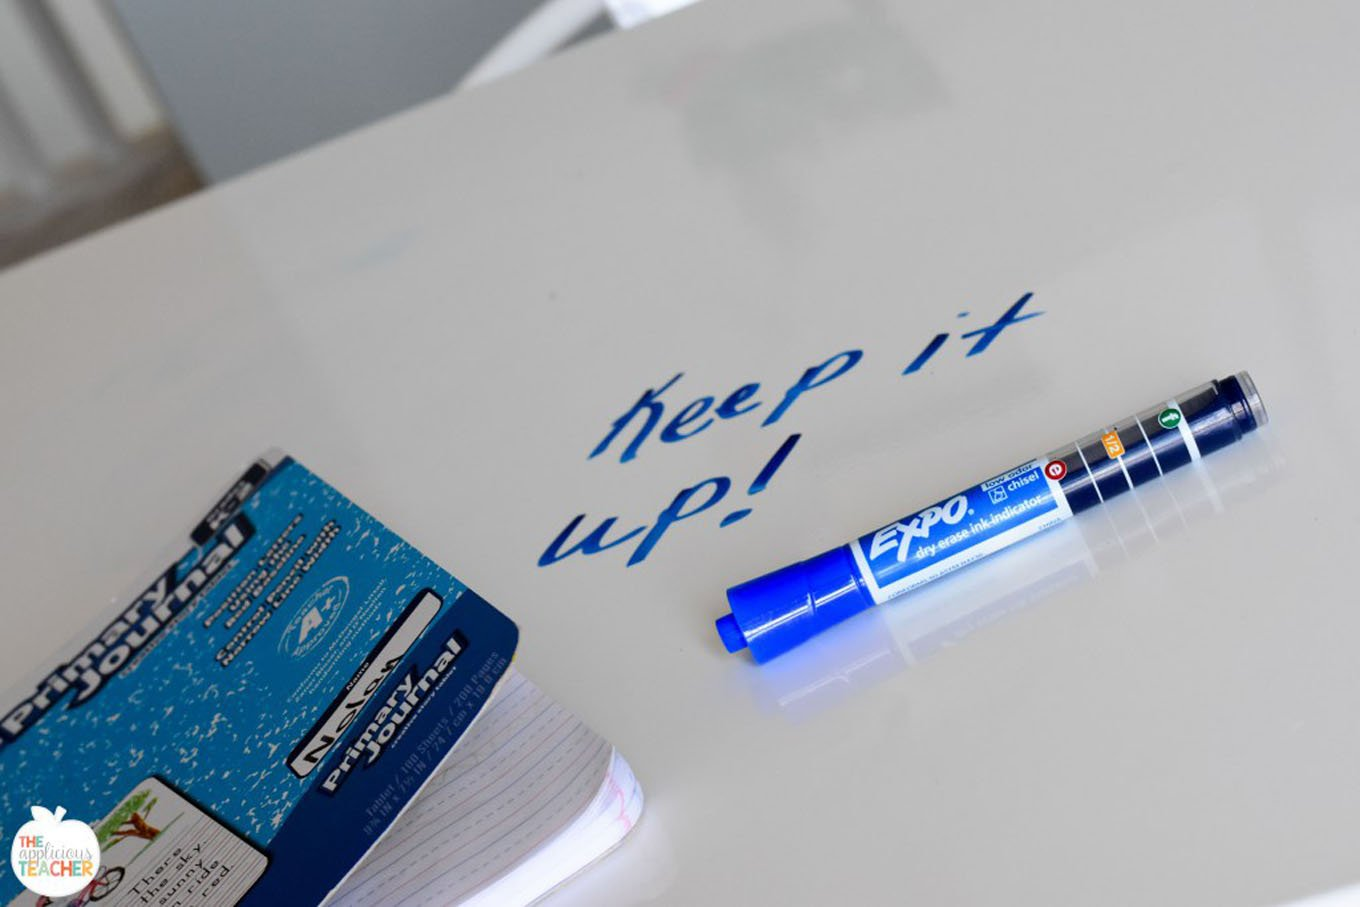 motivational-message-written-on-table-in-blue-expo-marker.jpg